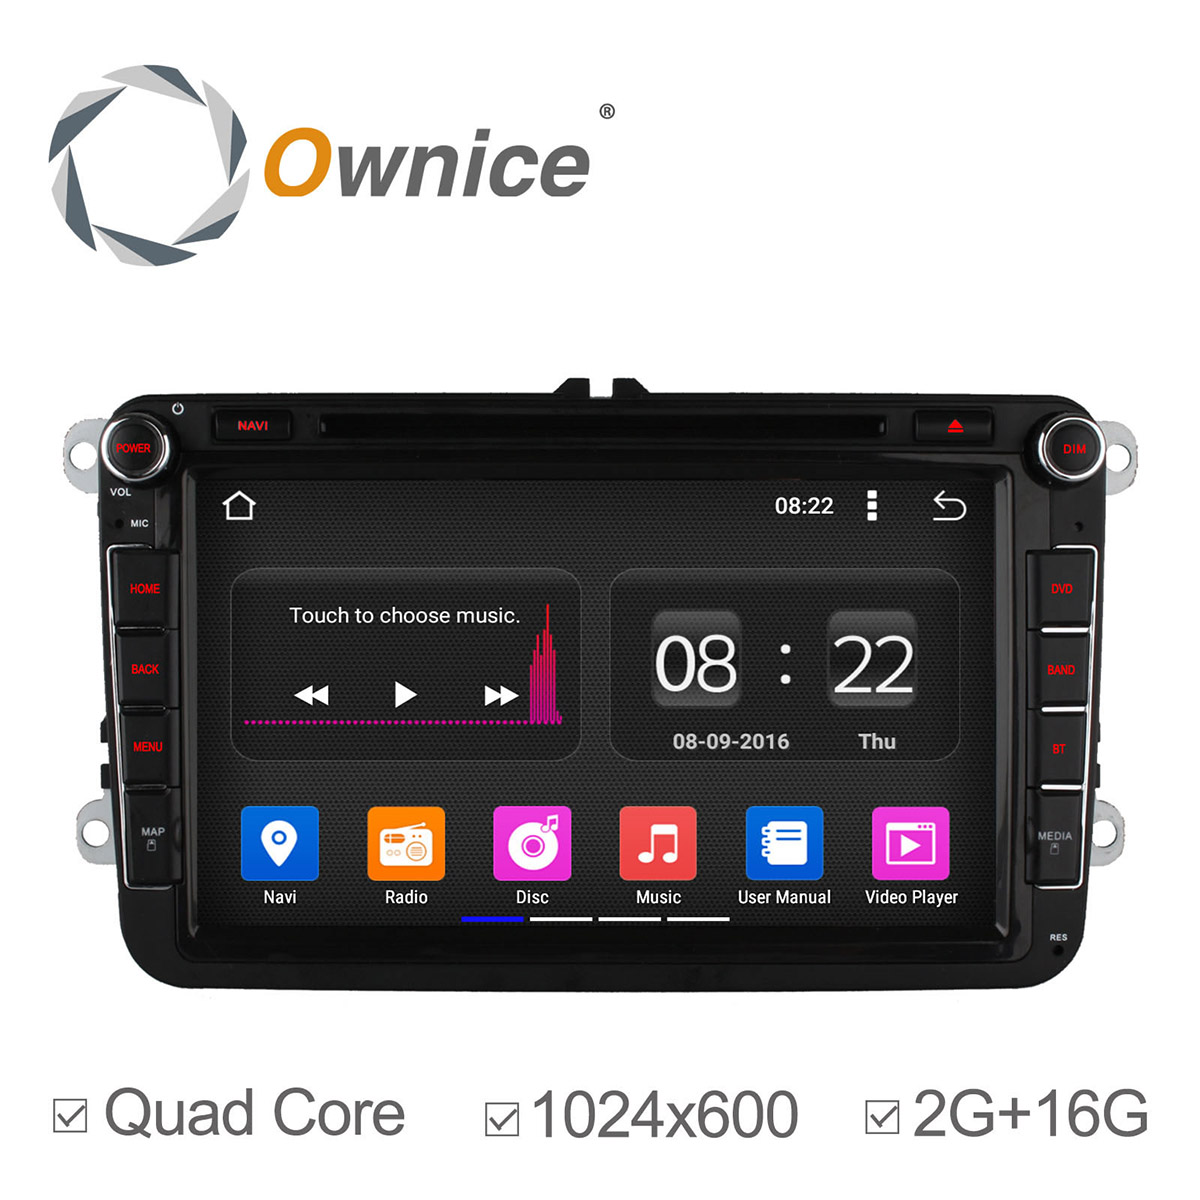 1024*600 Quad Core Android 5.1 Car DVD FOR Volkswagen Golf Tiguan Polo Passat Jetta Car GPS Navigation Radio 2G RAM + 16GB ROM